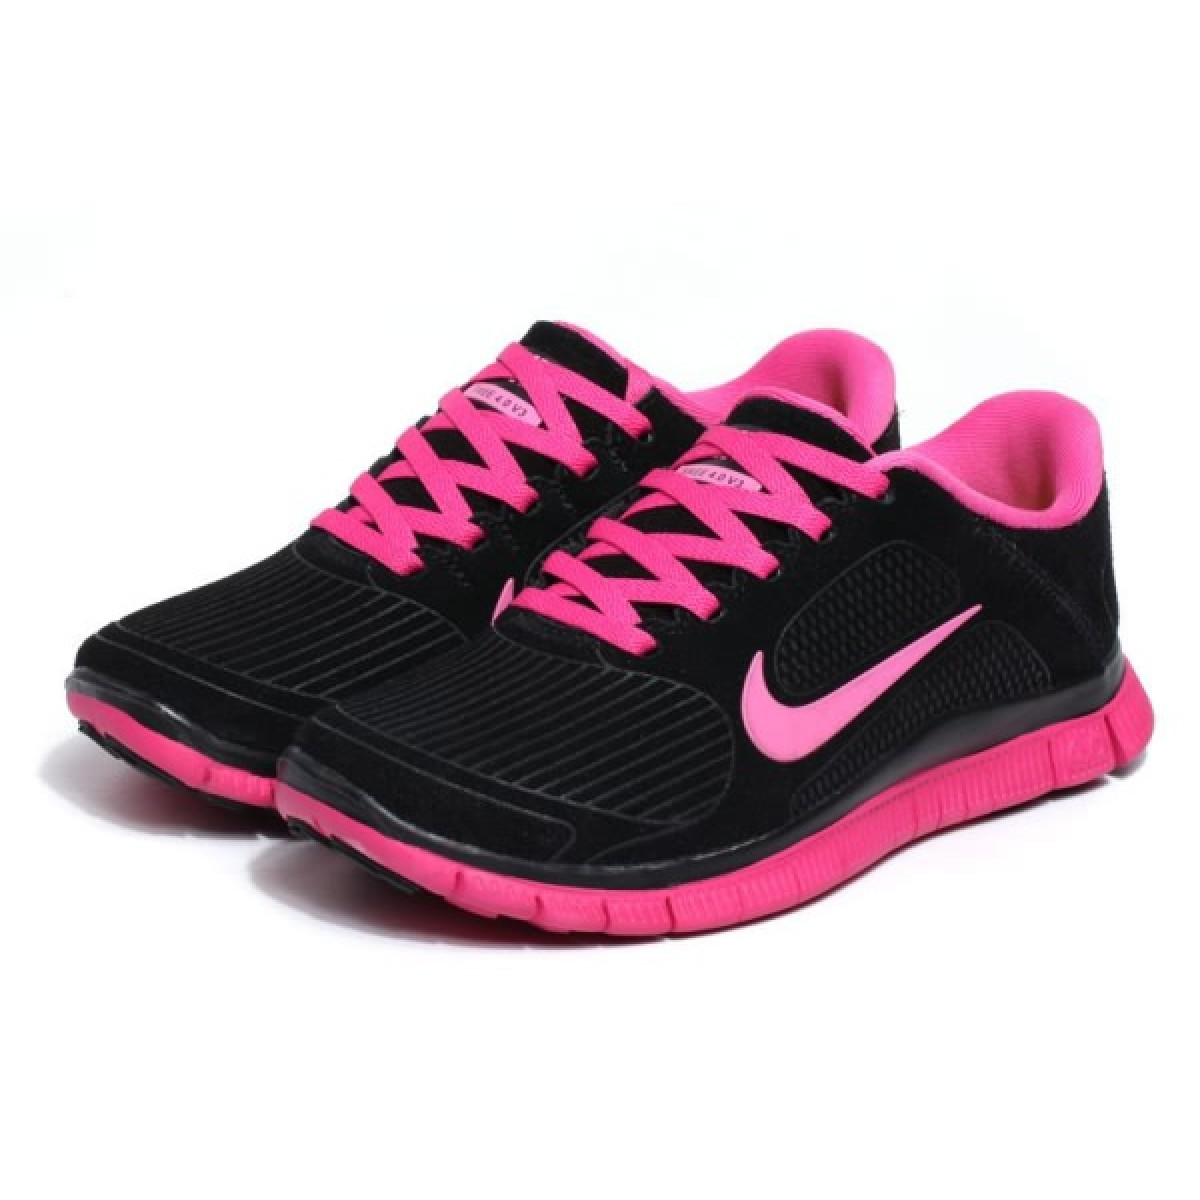 nike%20running%20shoes%20clipart